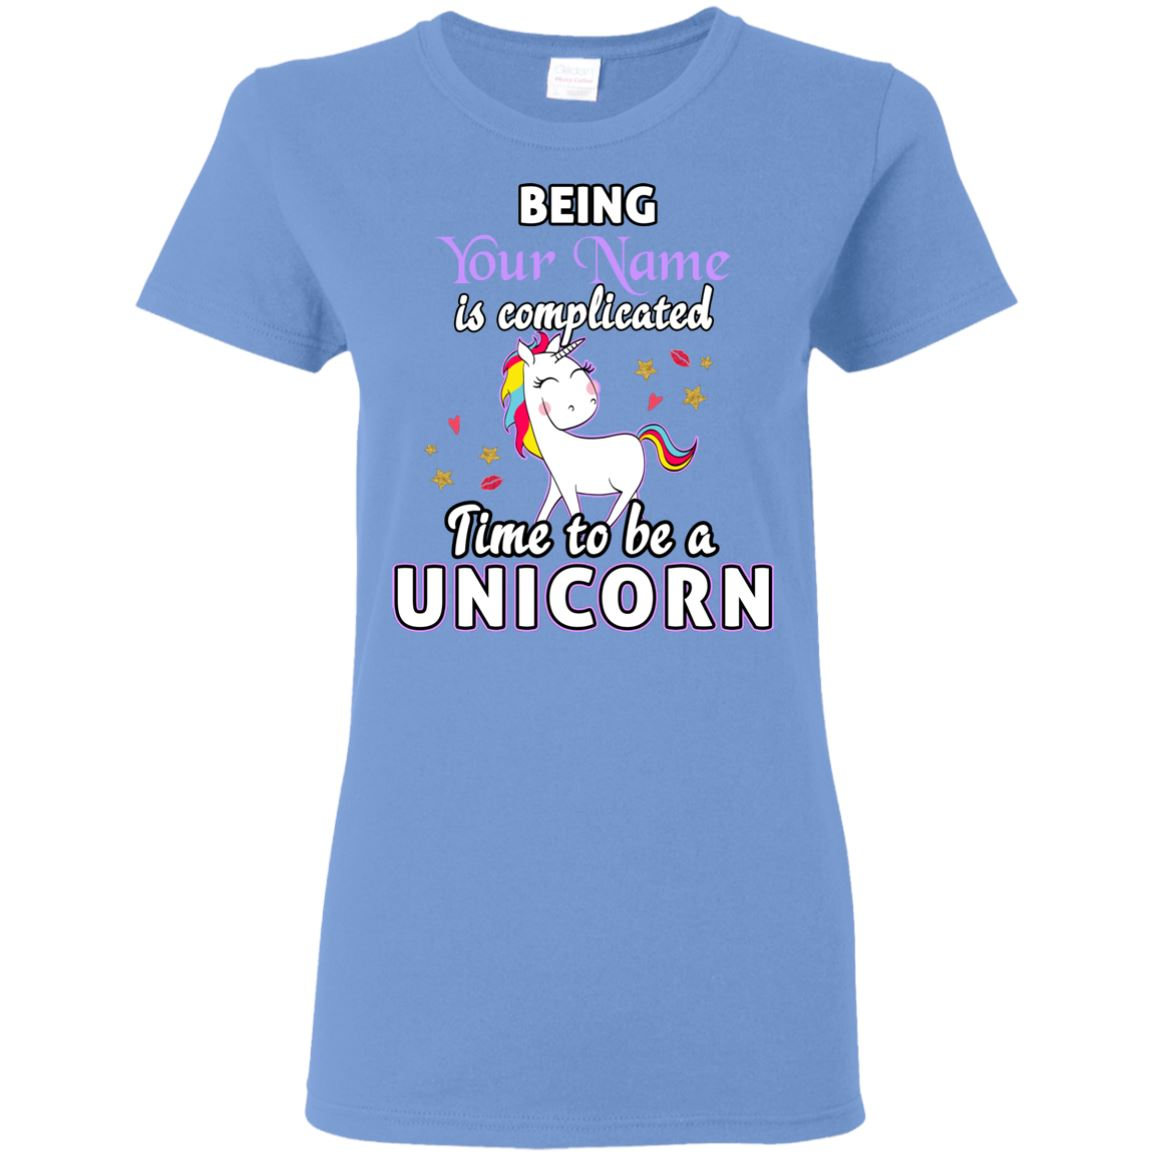 Time To Be A Unicorn Personalized T-Shirt Apparel Carolina Blue S